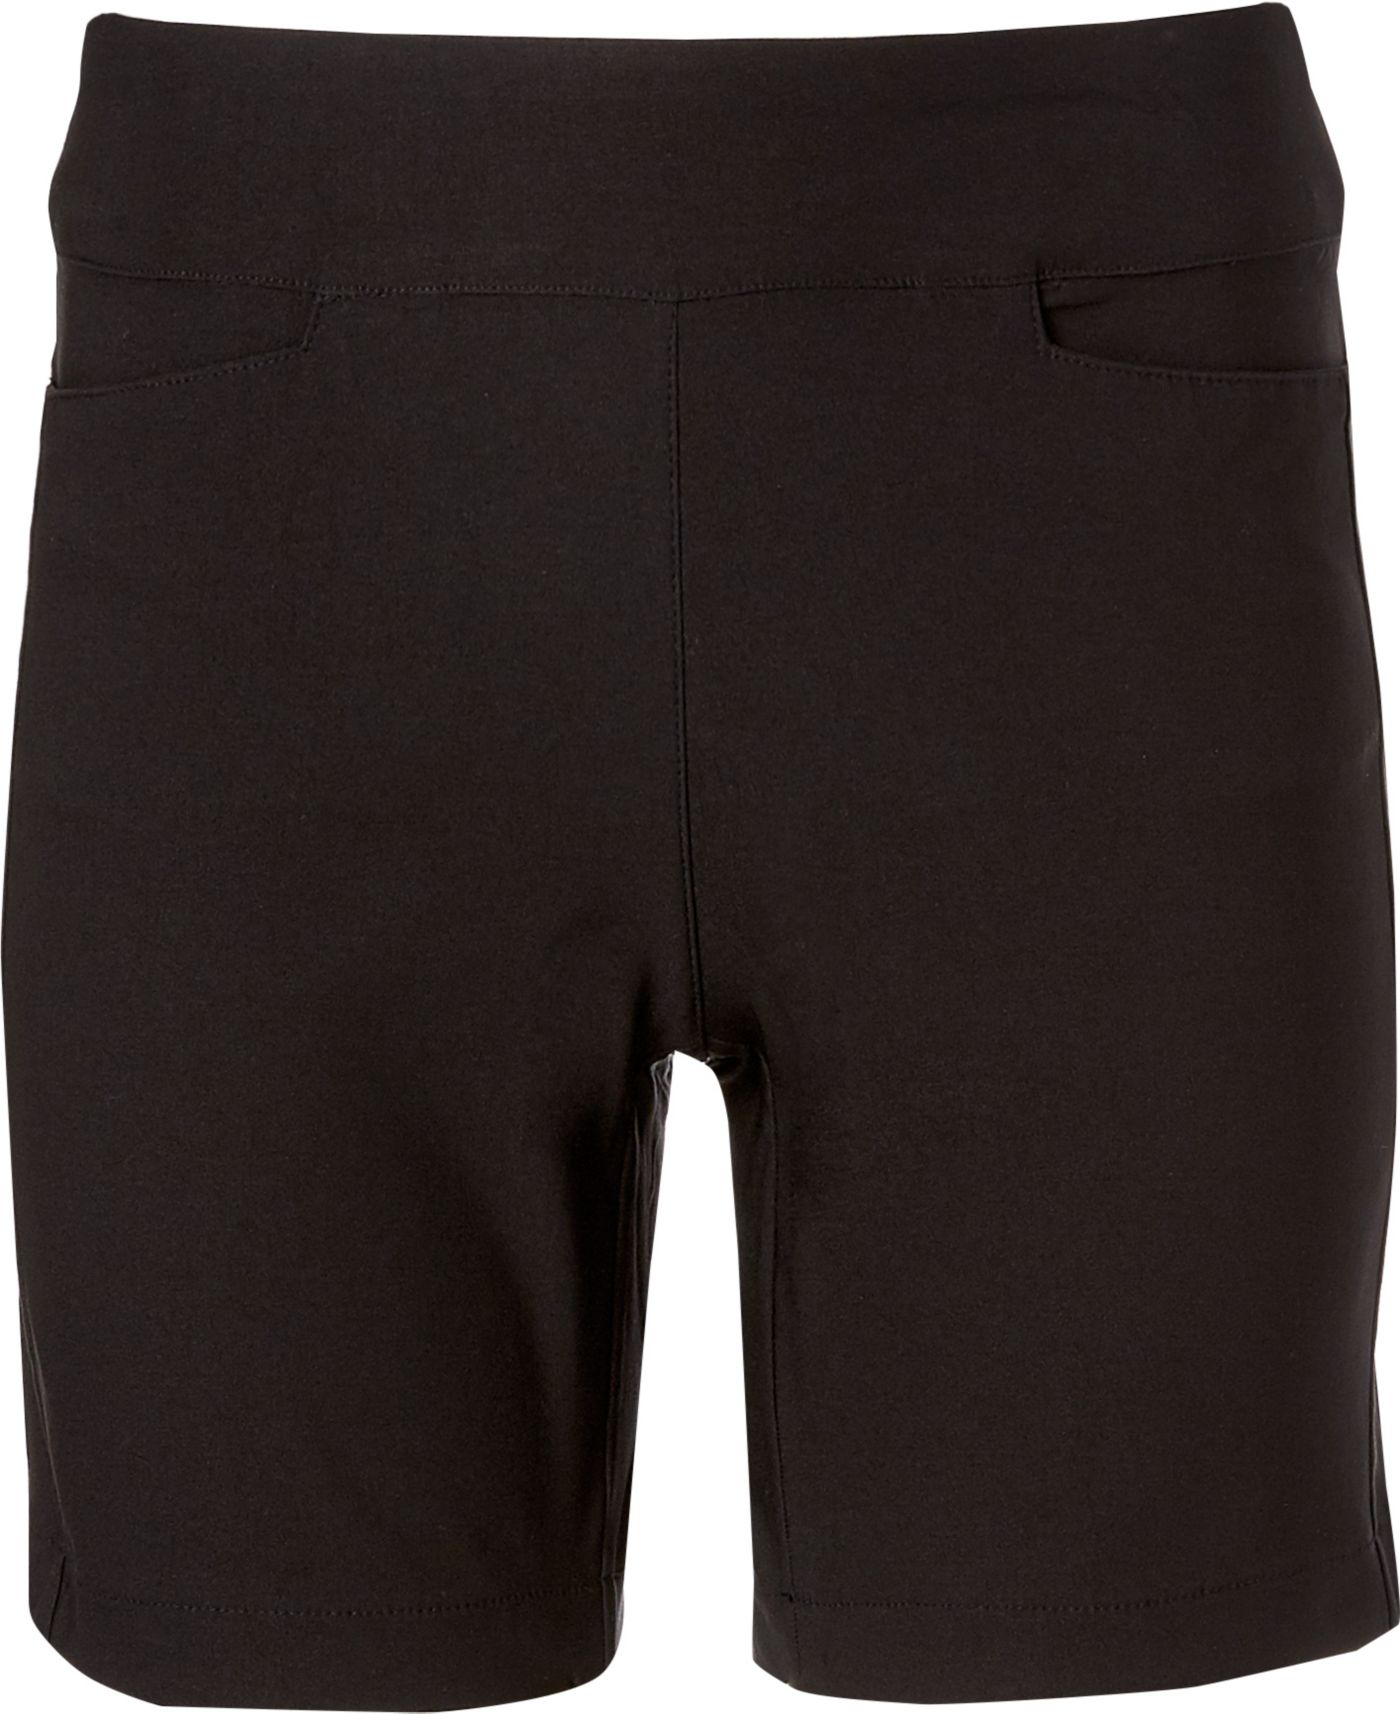 Lady Hagen Women's Easy Shaper Collection Pull-On Golf Shorts